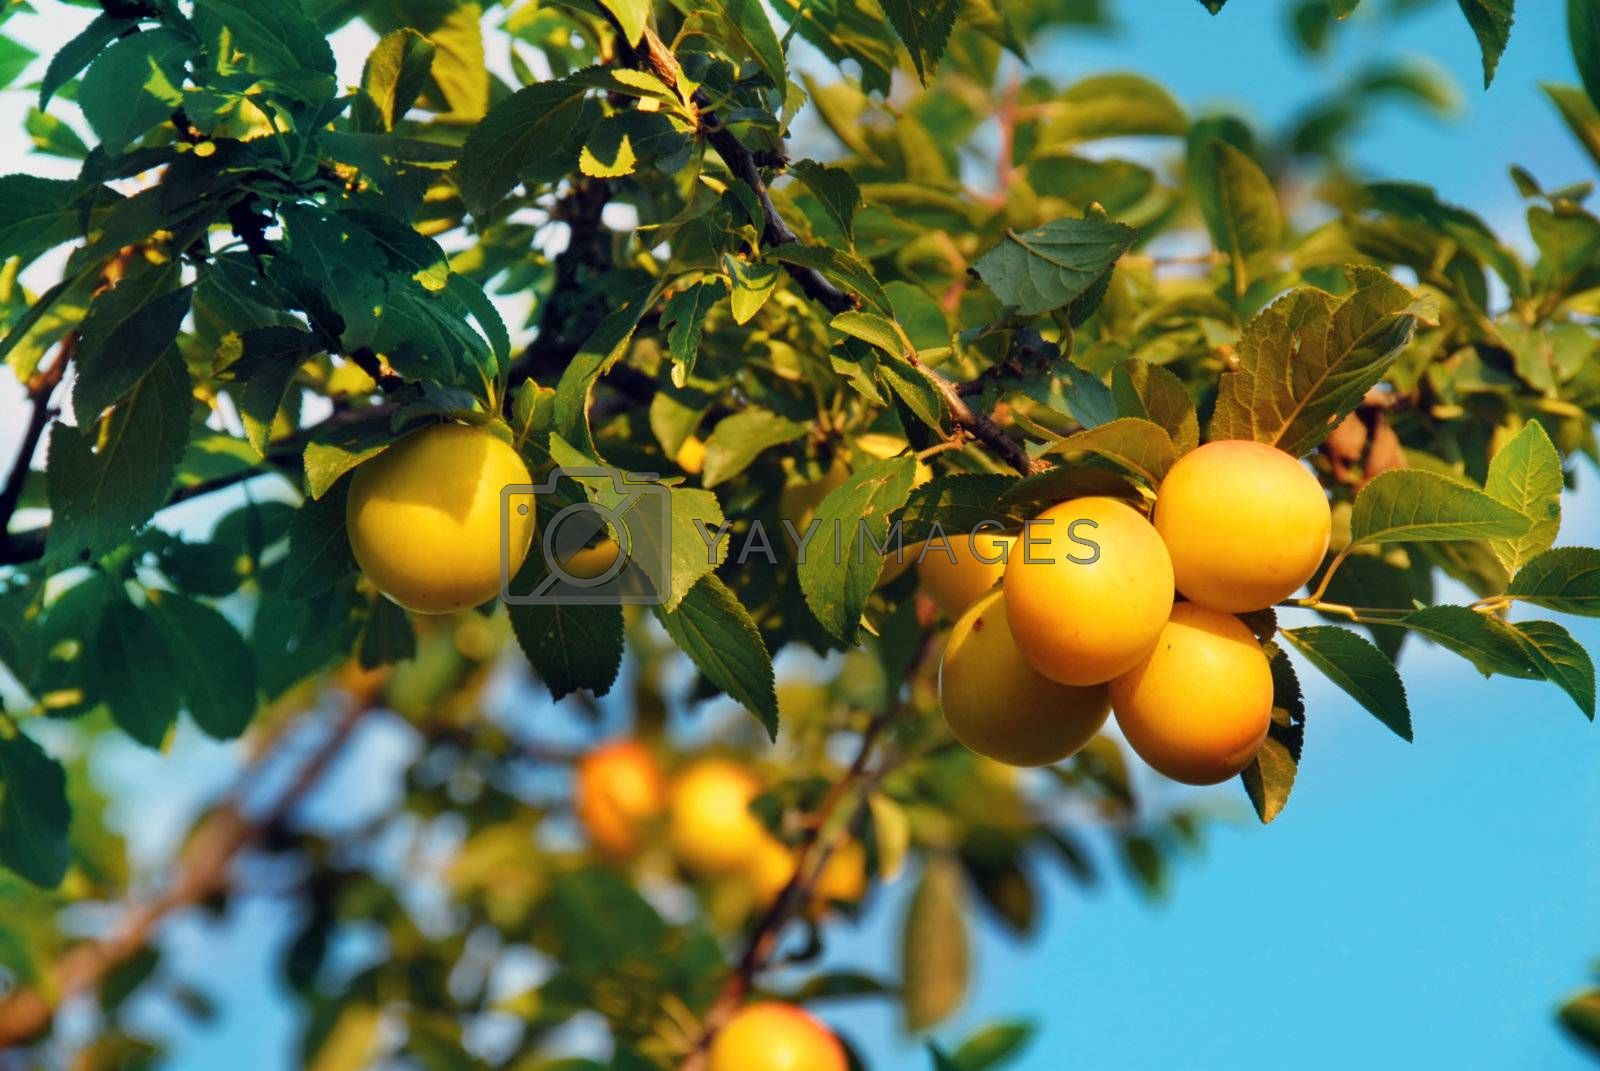 Royalty free image of Yellow plums by simply